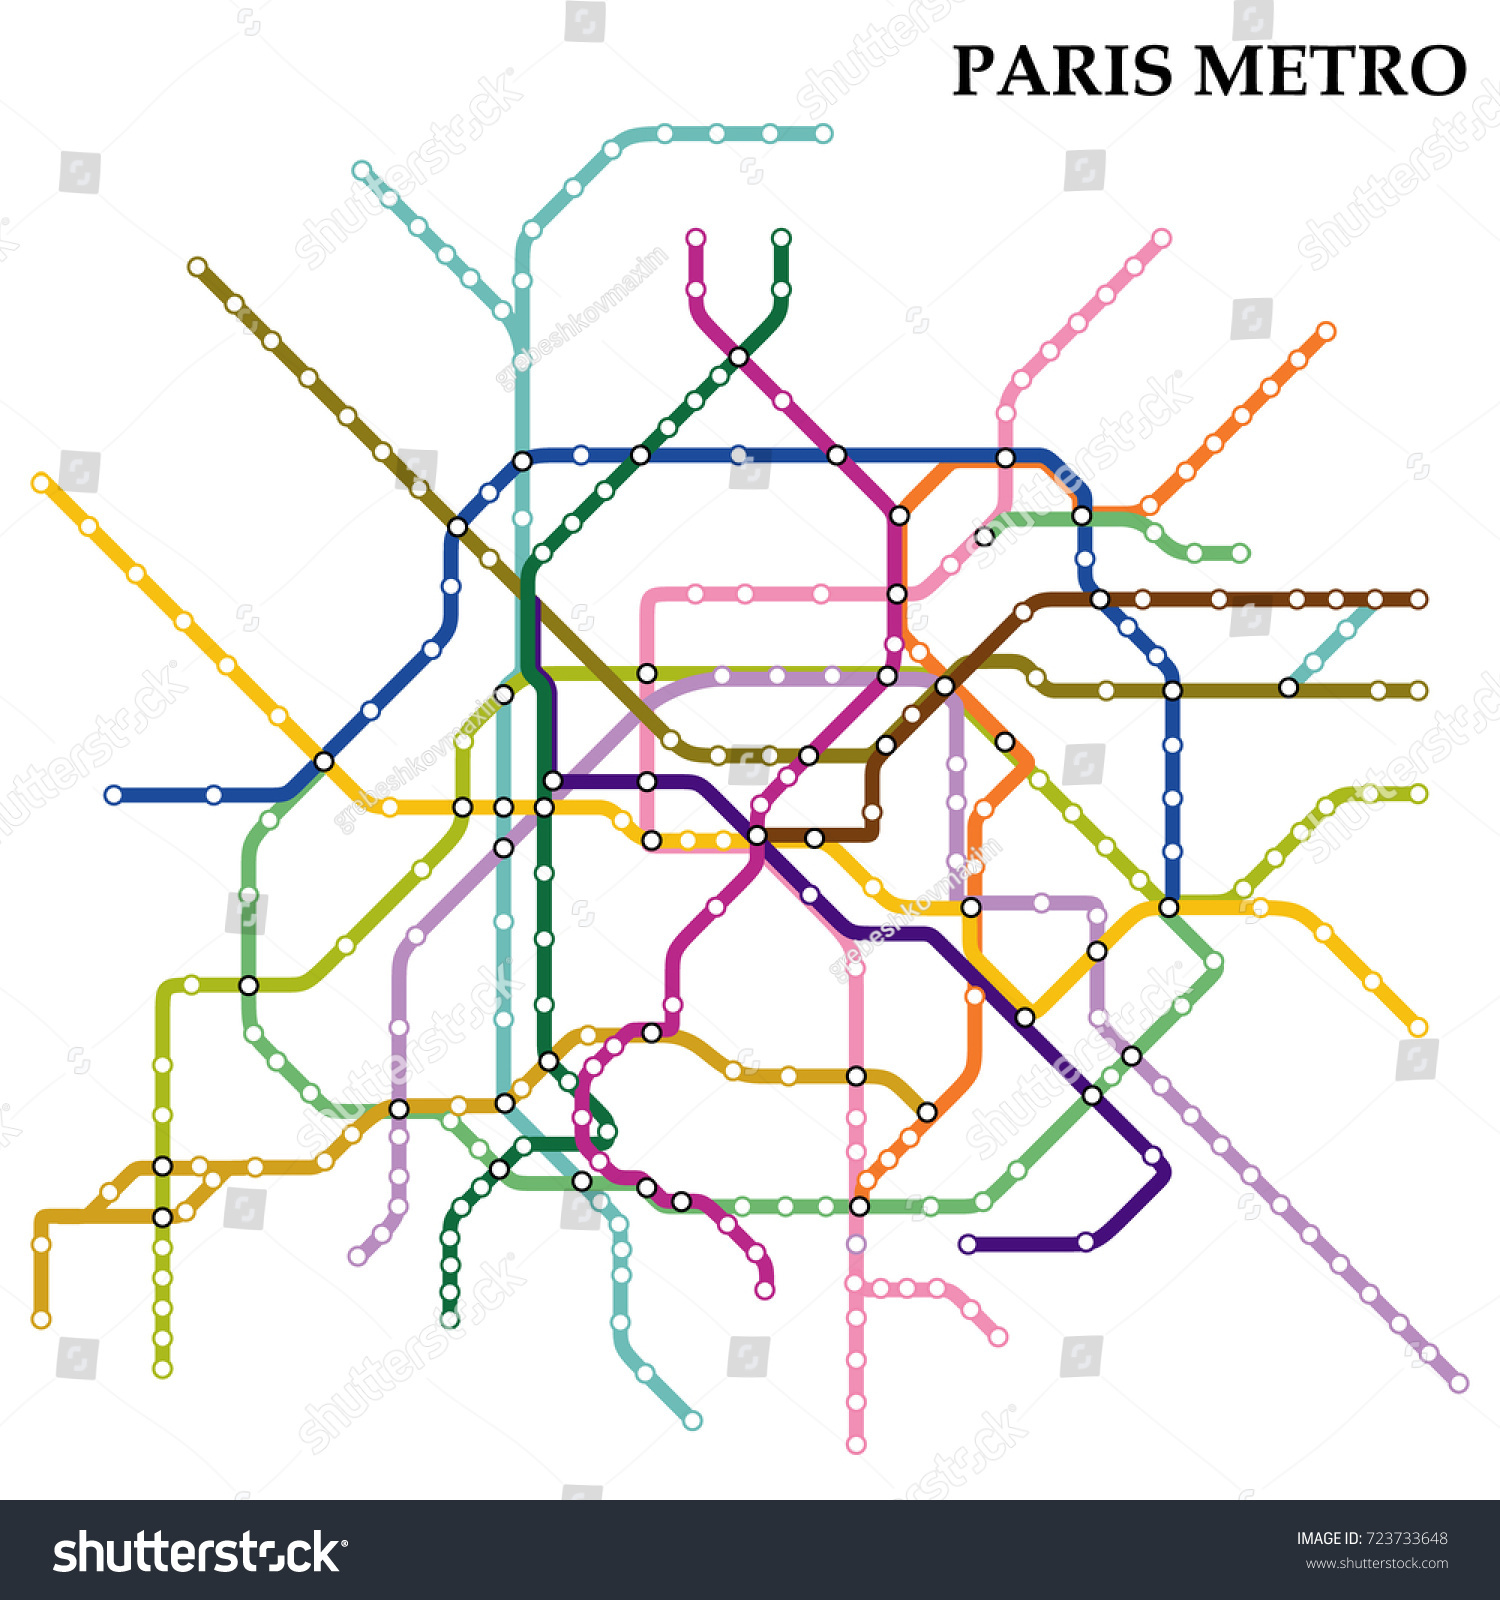 map paris metro subway template city stock vector 723733648 shutterstock